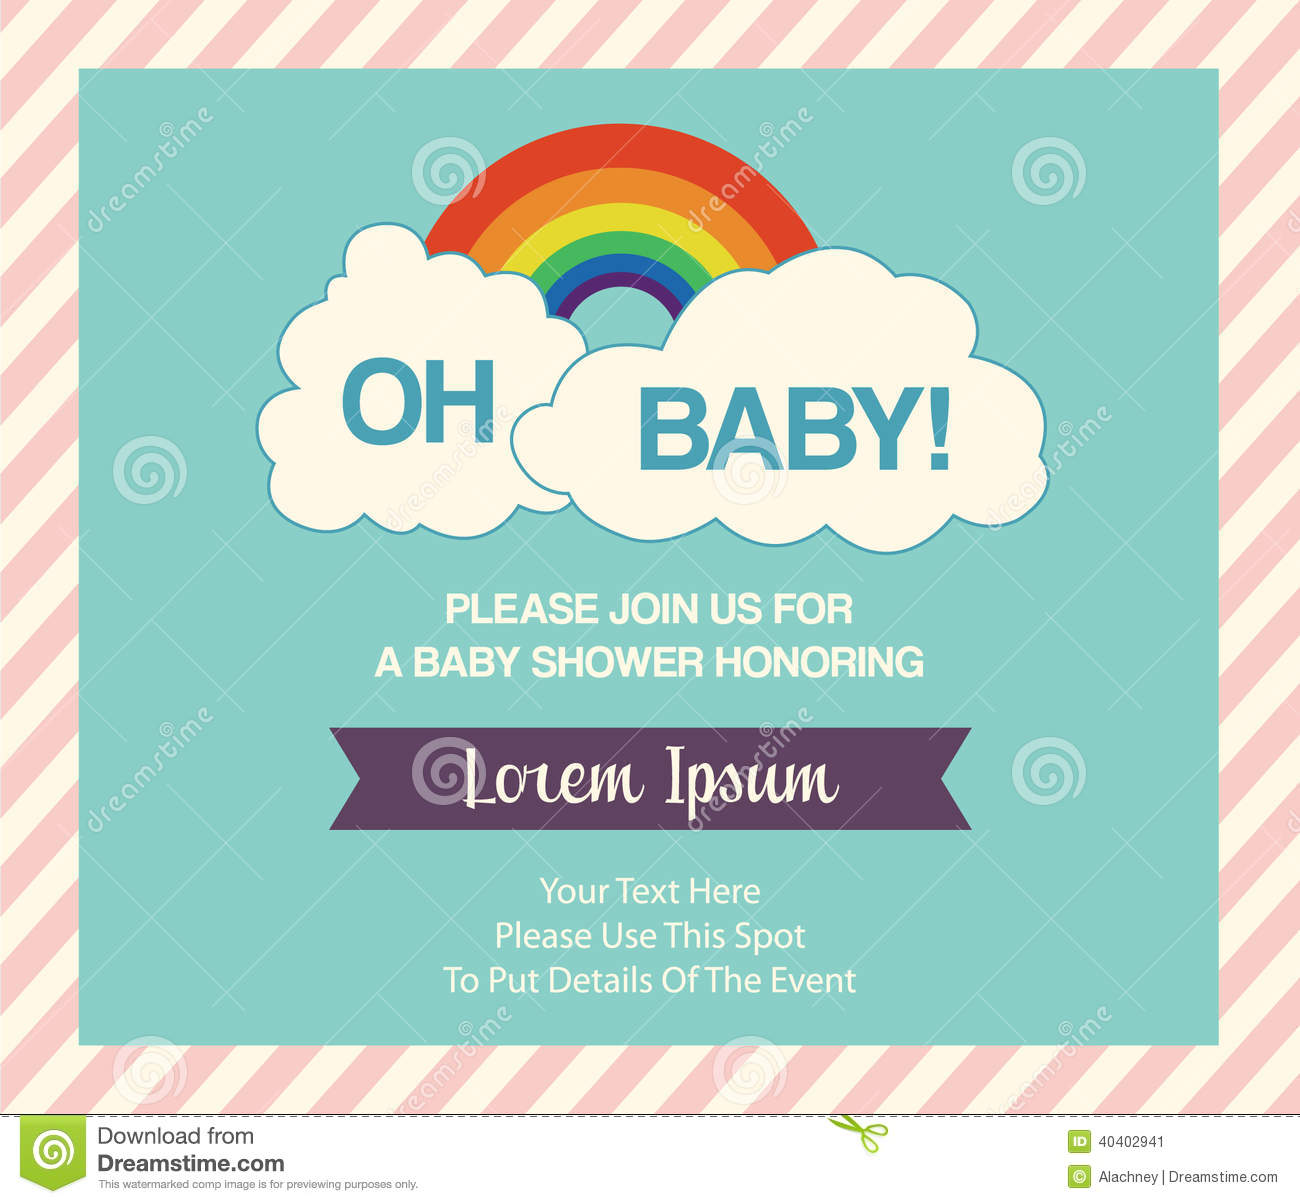 Baby Shower Invitation Template  Baby Shower Invitation Template Download